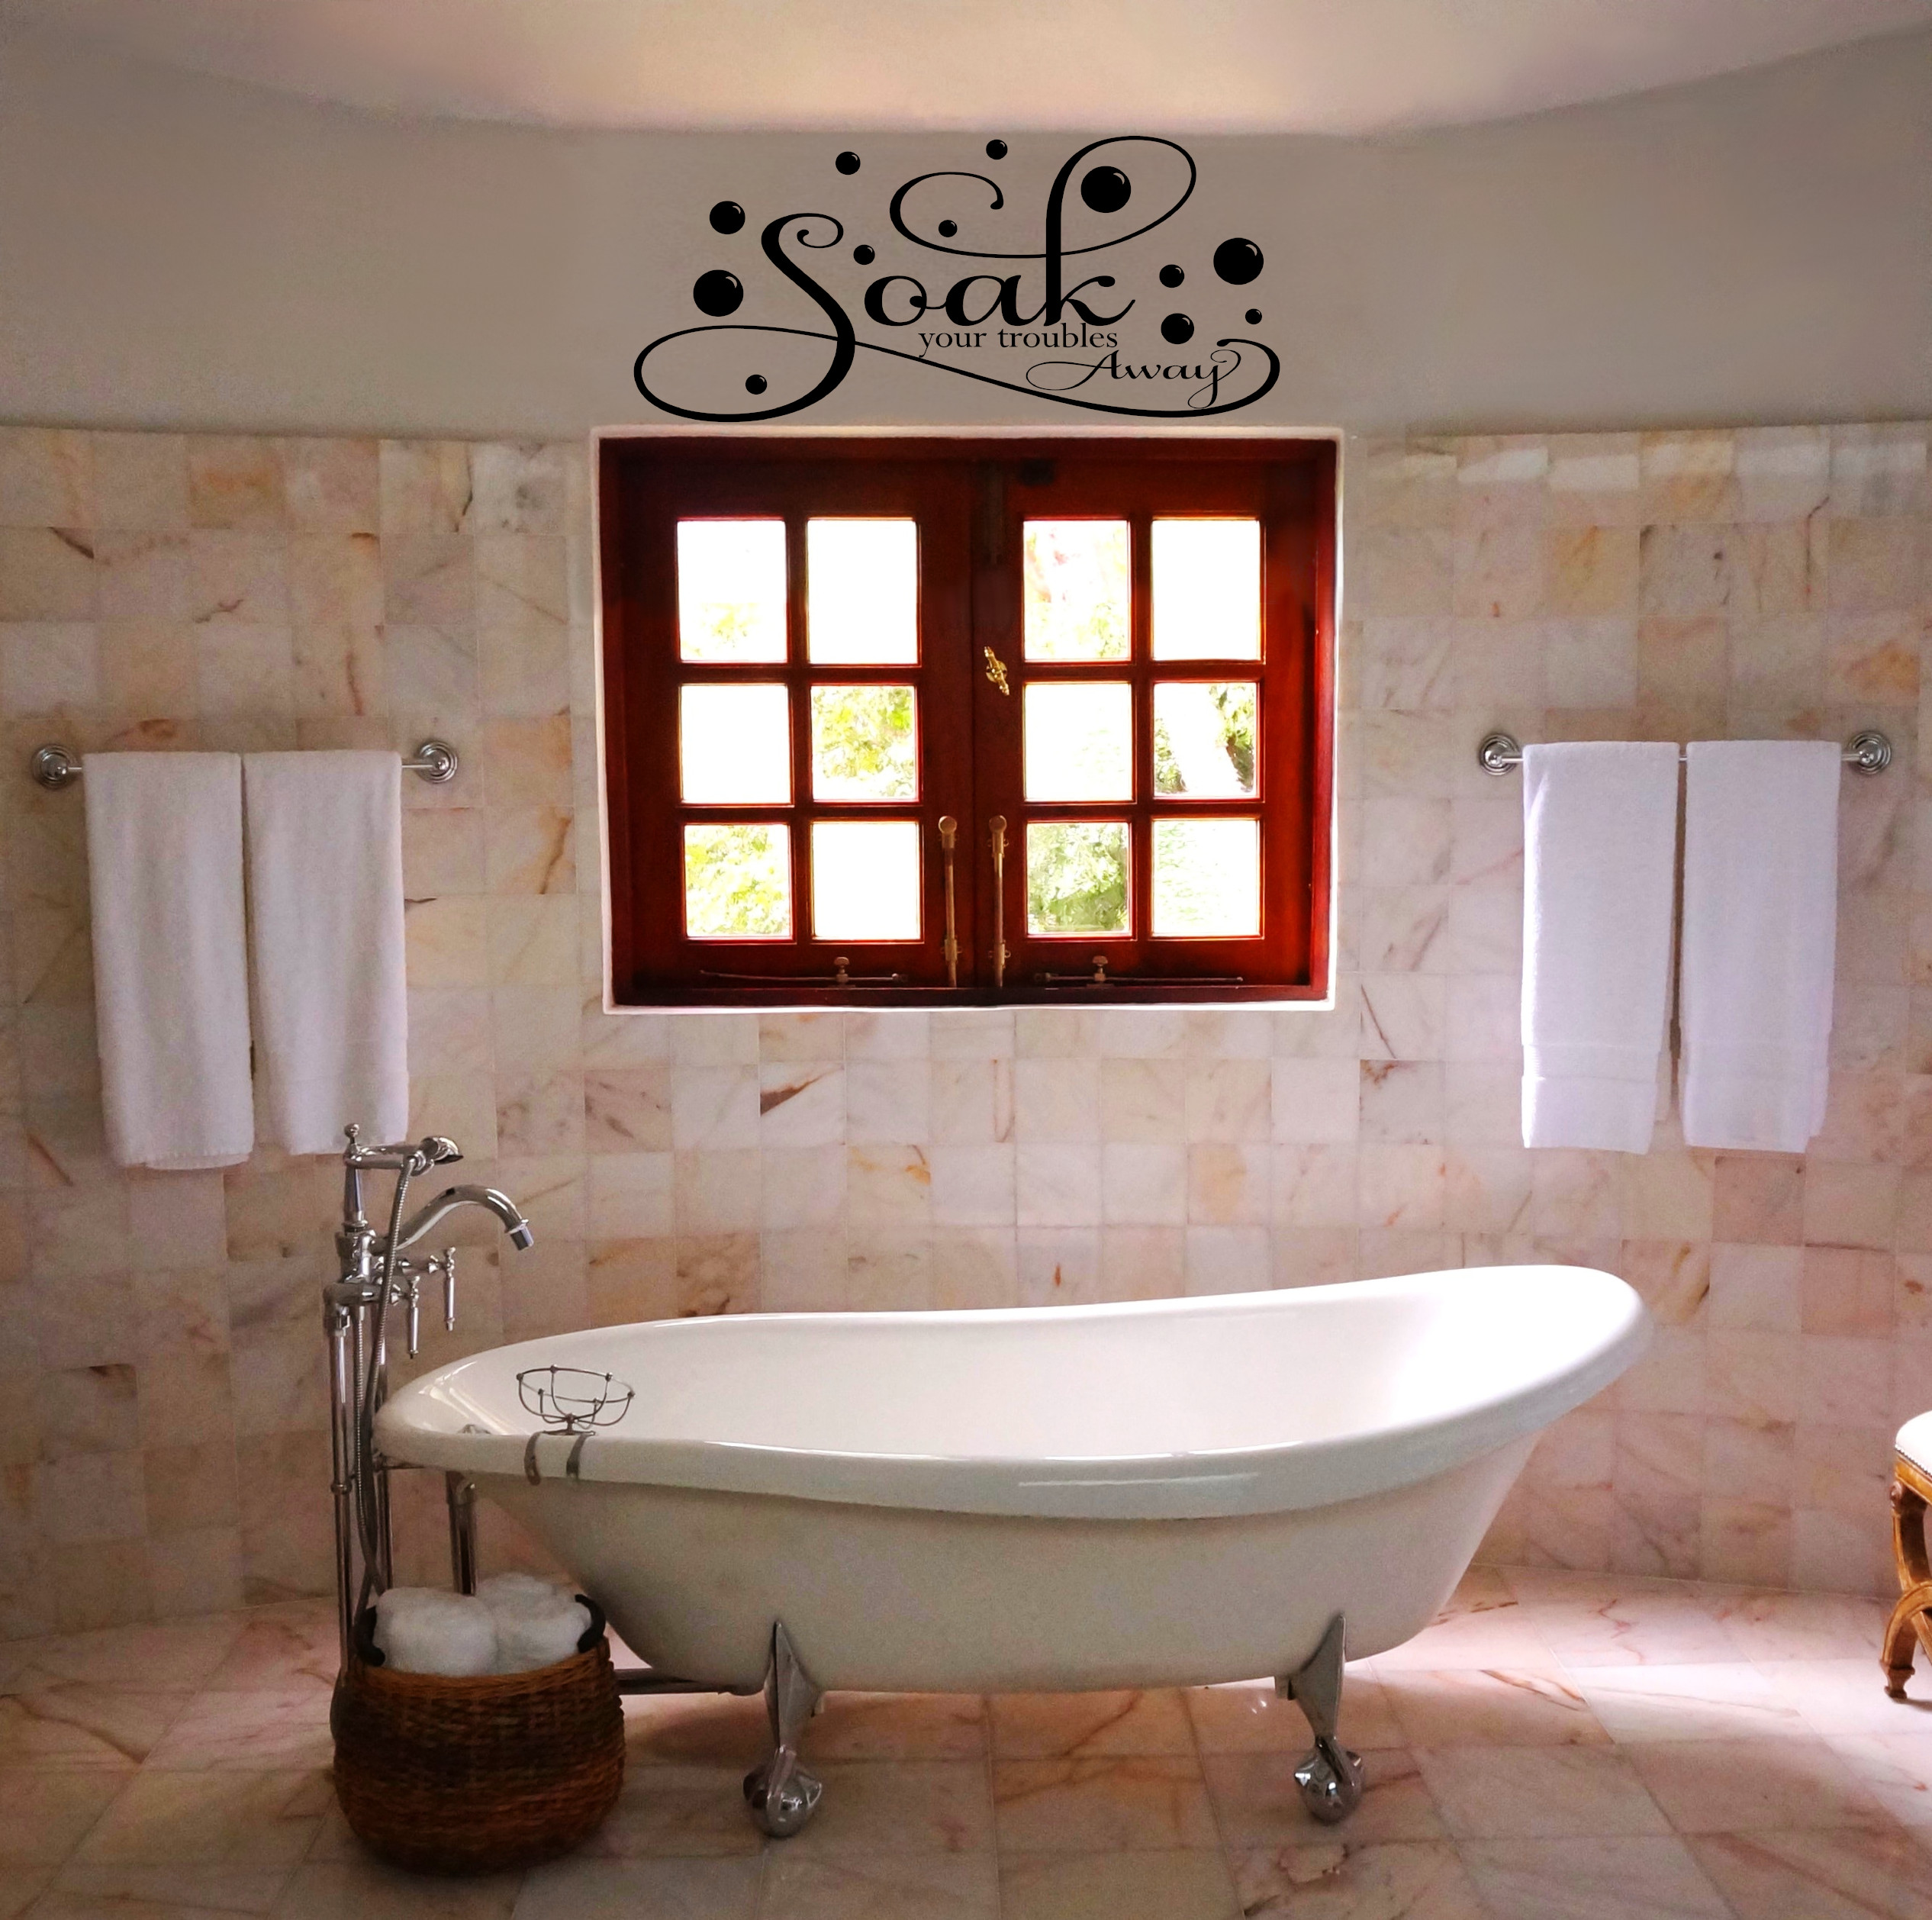 Bathroom Wall Decal | Soak Your Troubles Away Relaxation Bathroom Wall Decal Spa Wall